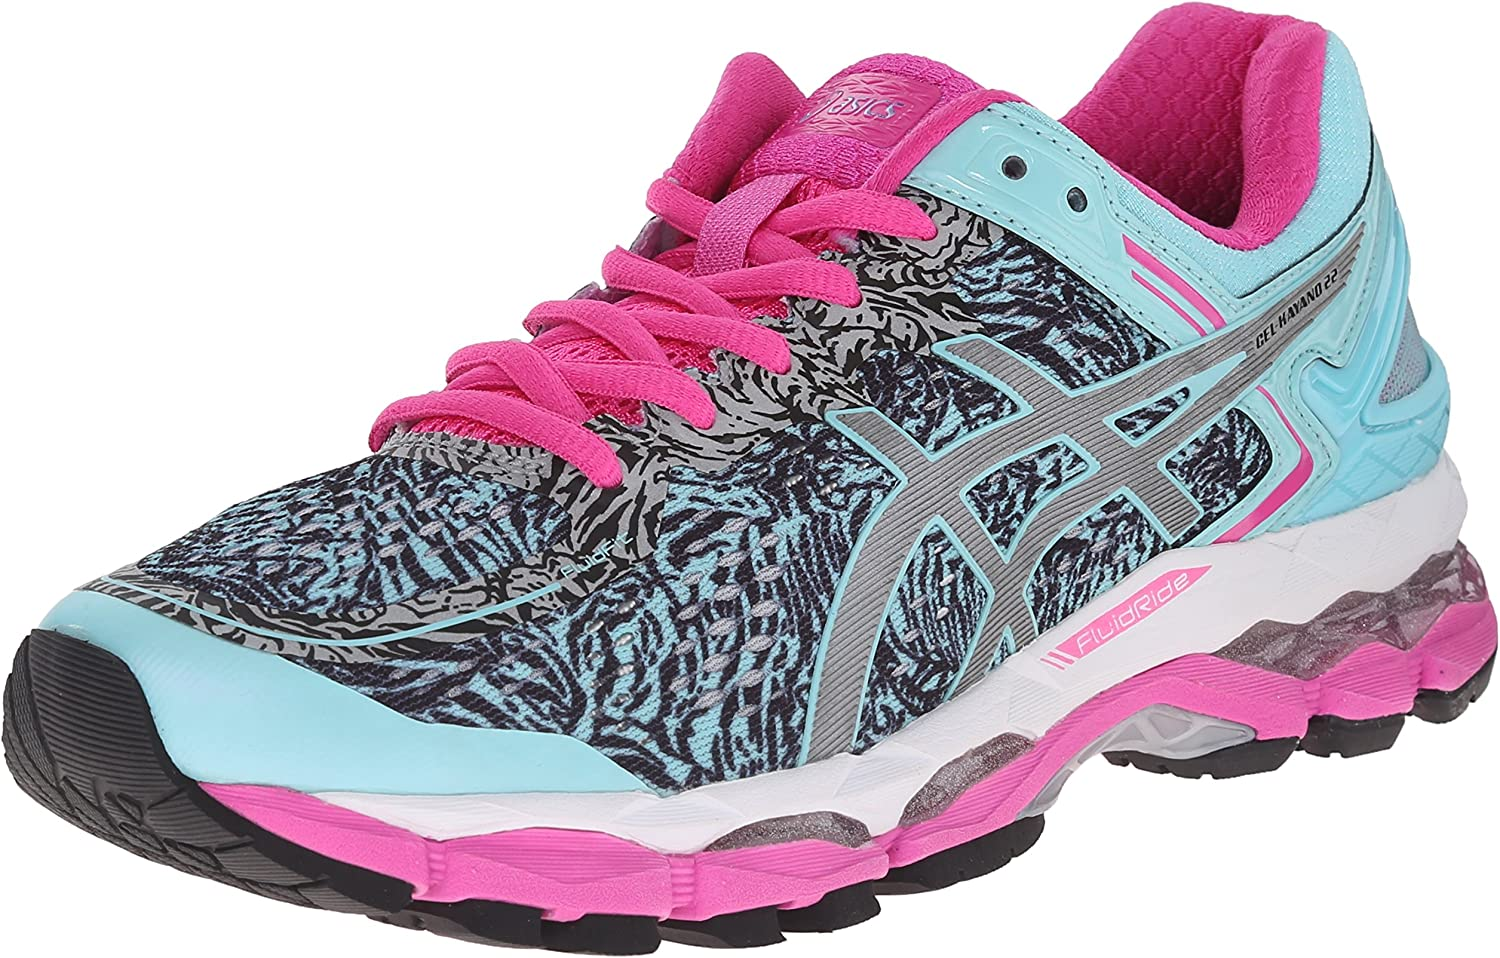 Asics Gel Kayano 22 womens Running Shoes Size 7 Aqua Splash